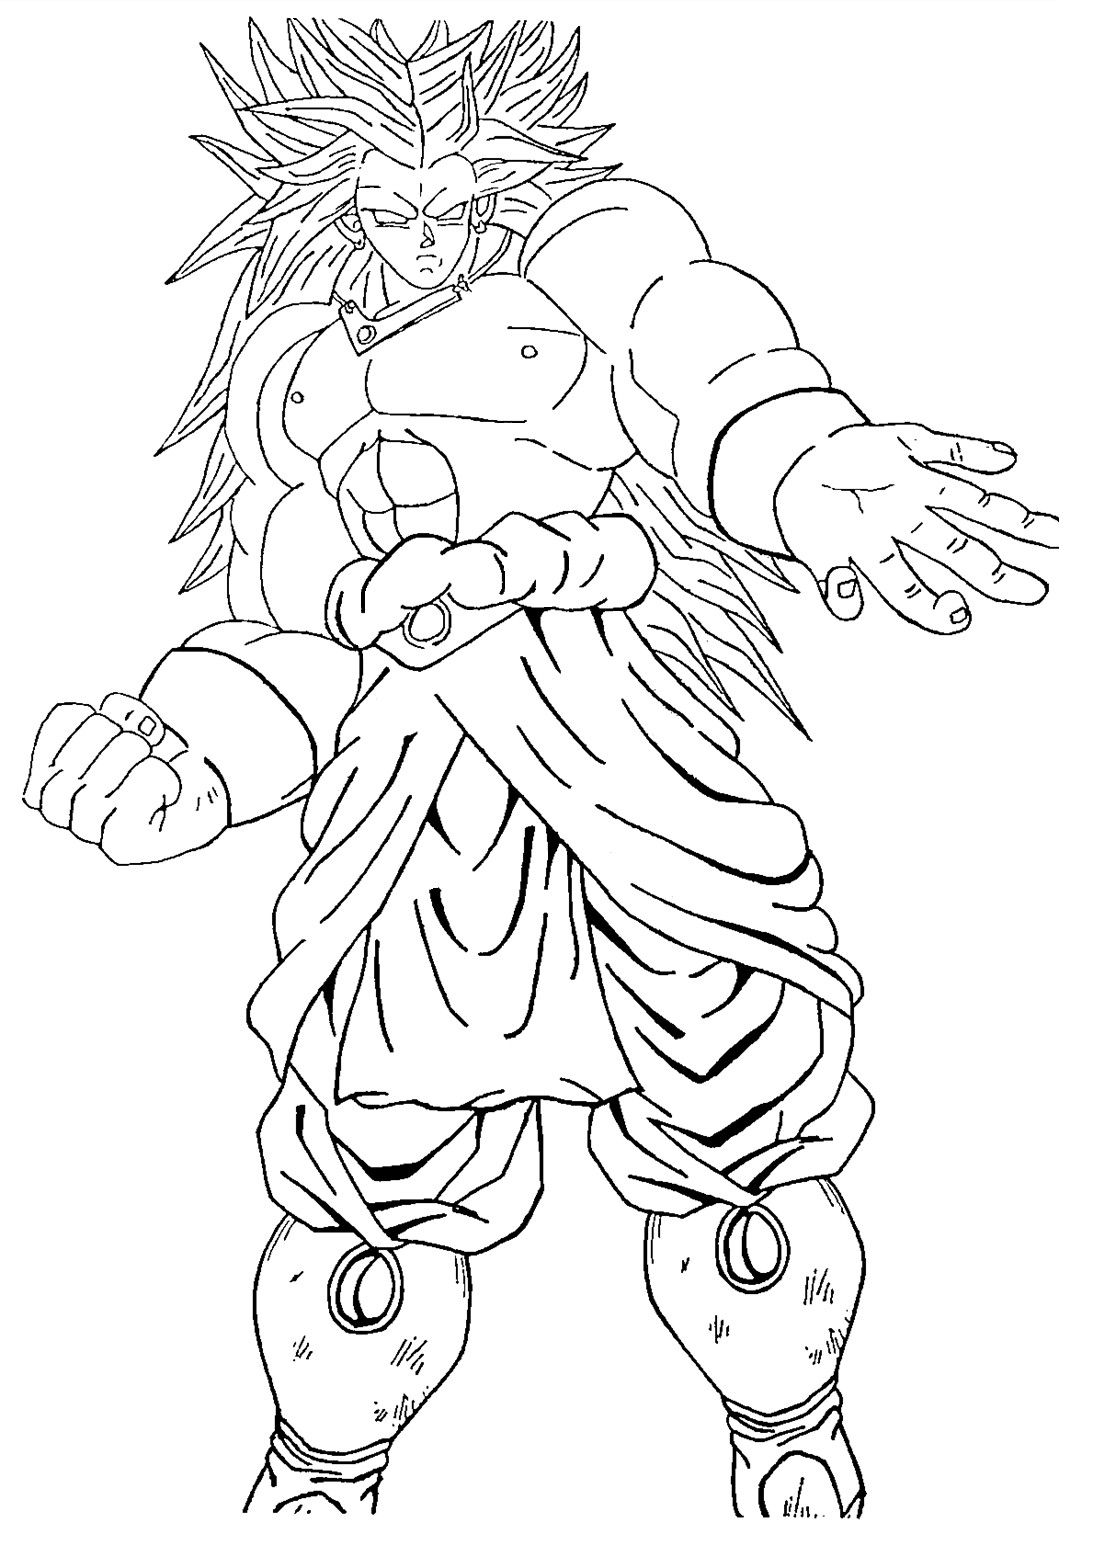 Goku Ssj3 Coloring Pages